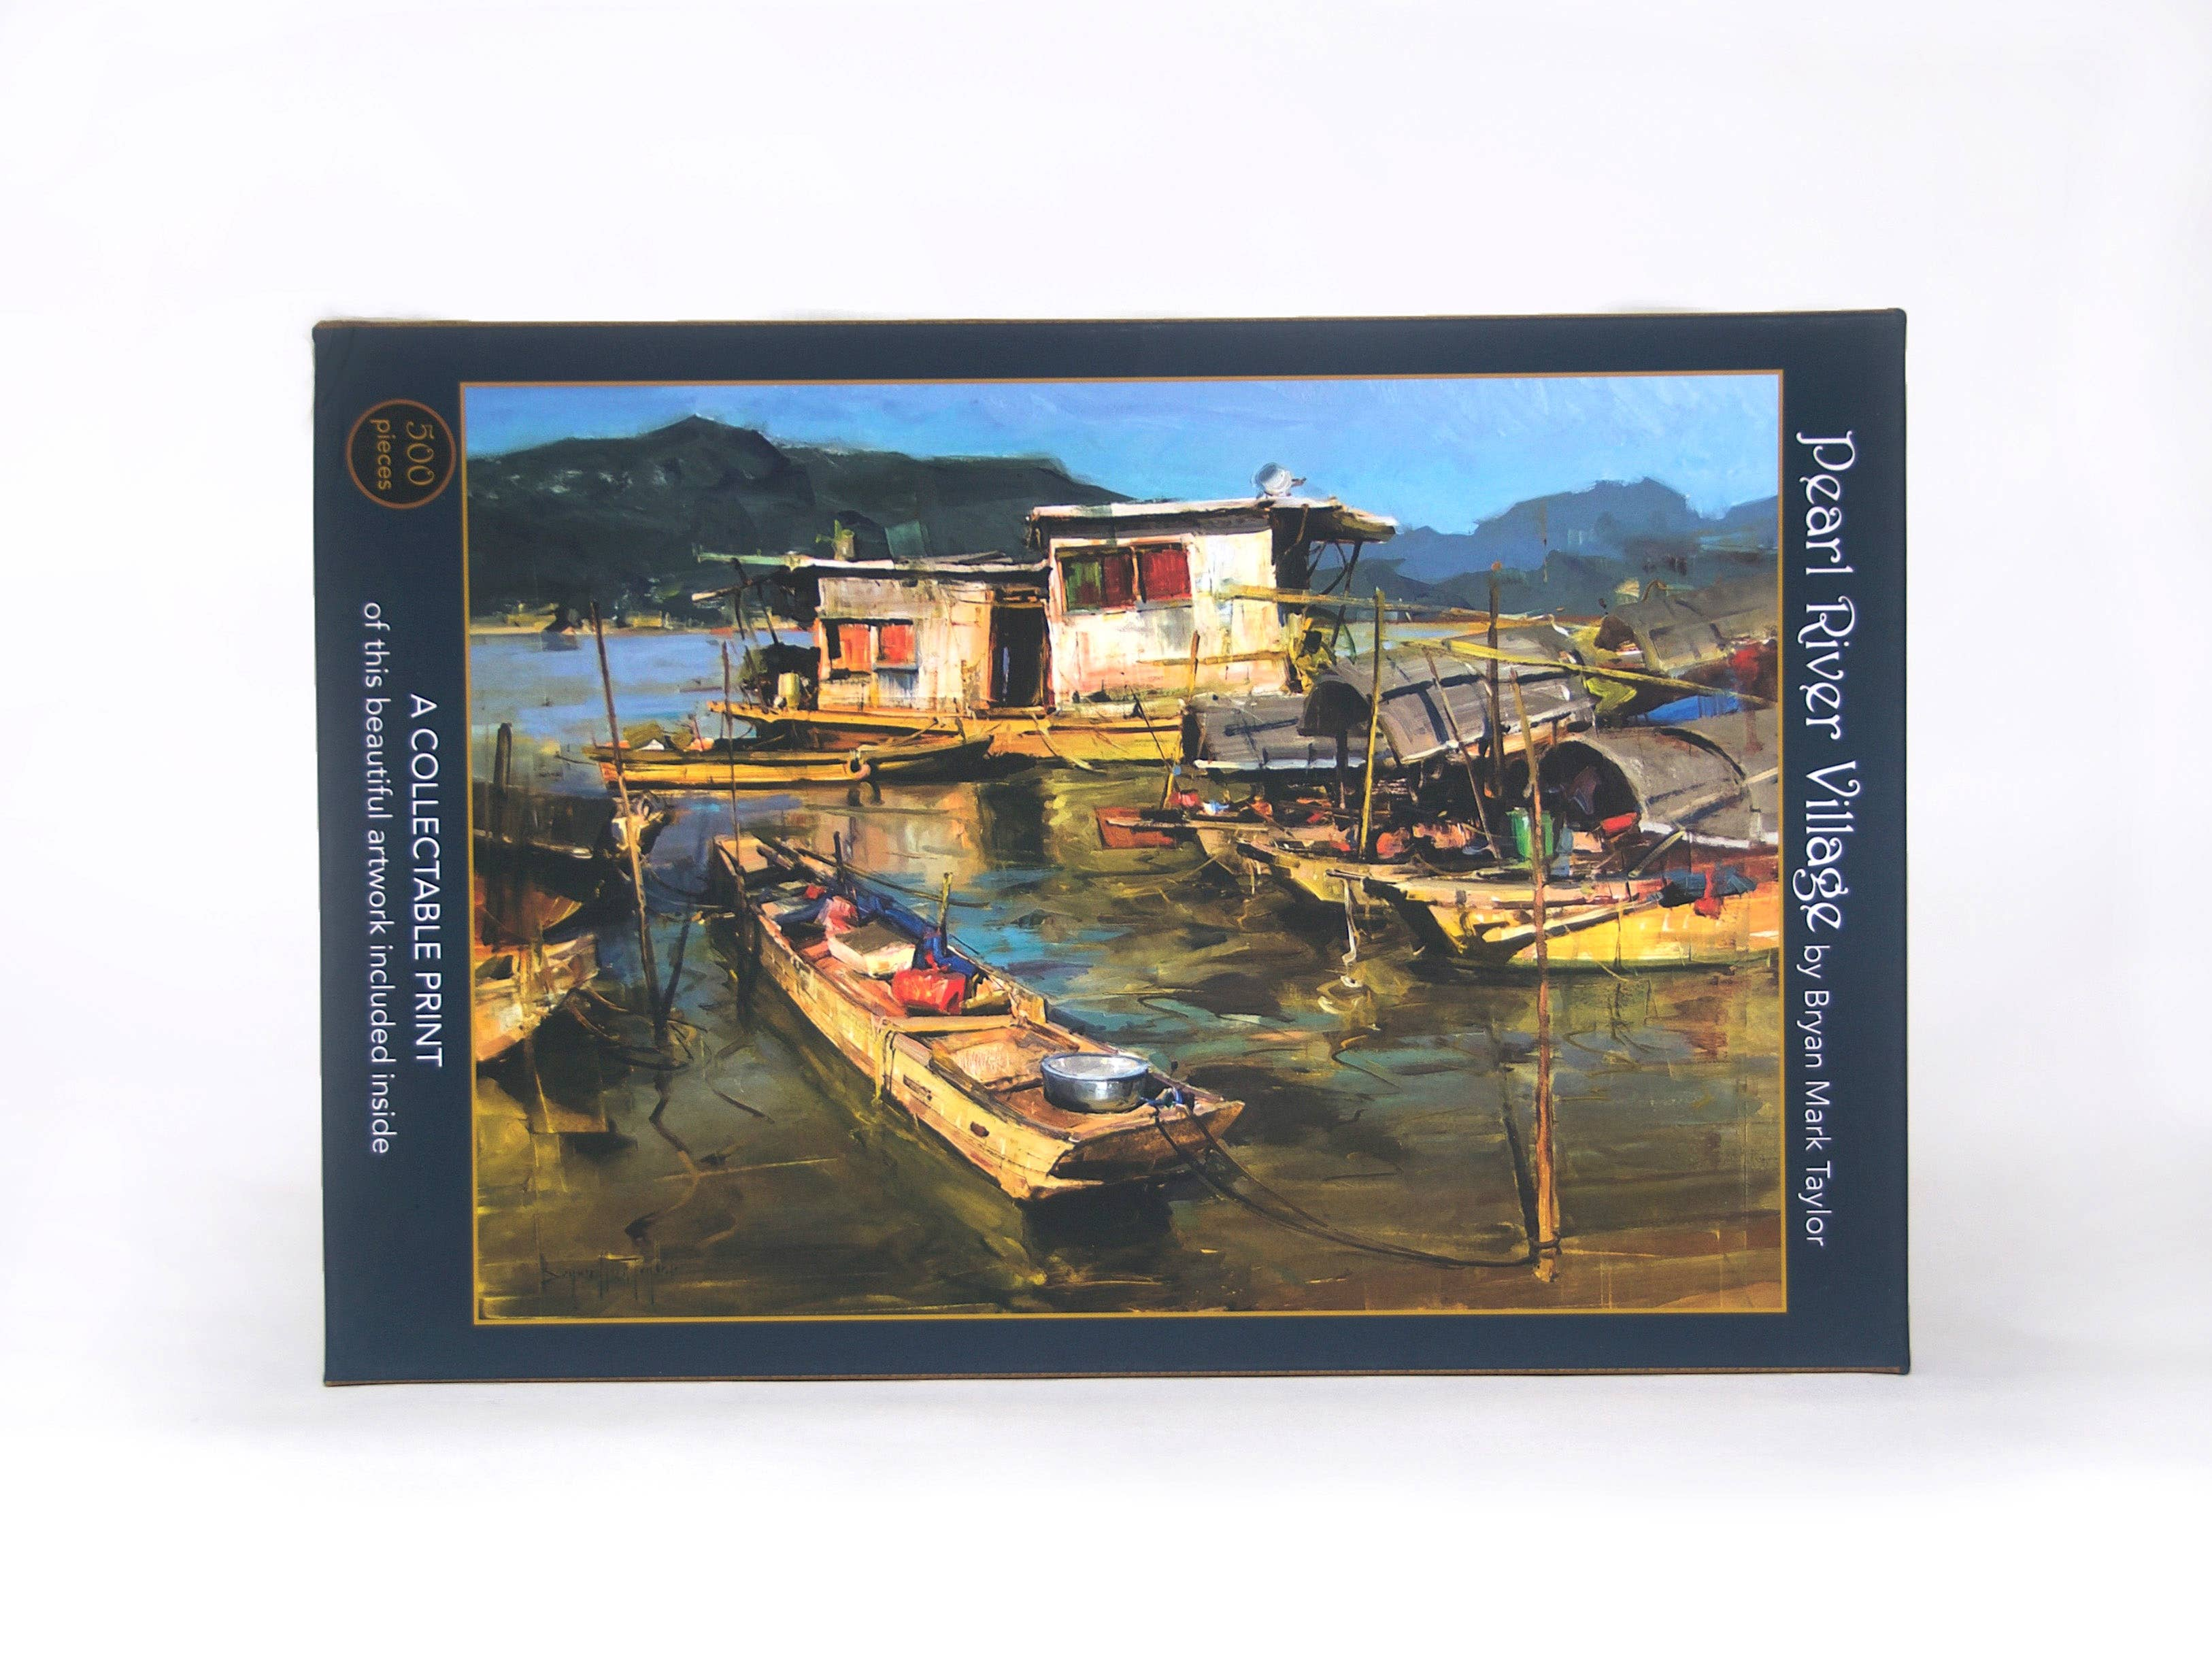 Pearl River Village;  500-Piece Velvet-Touch Jigsaw Puzzle featuring the art of Bryan M. Taylor | Trada Marketplace